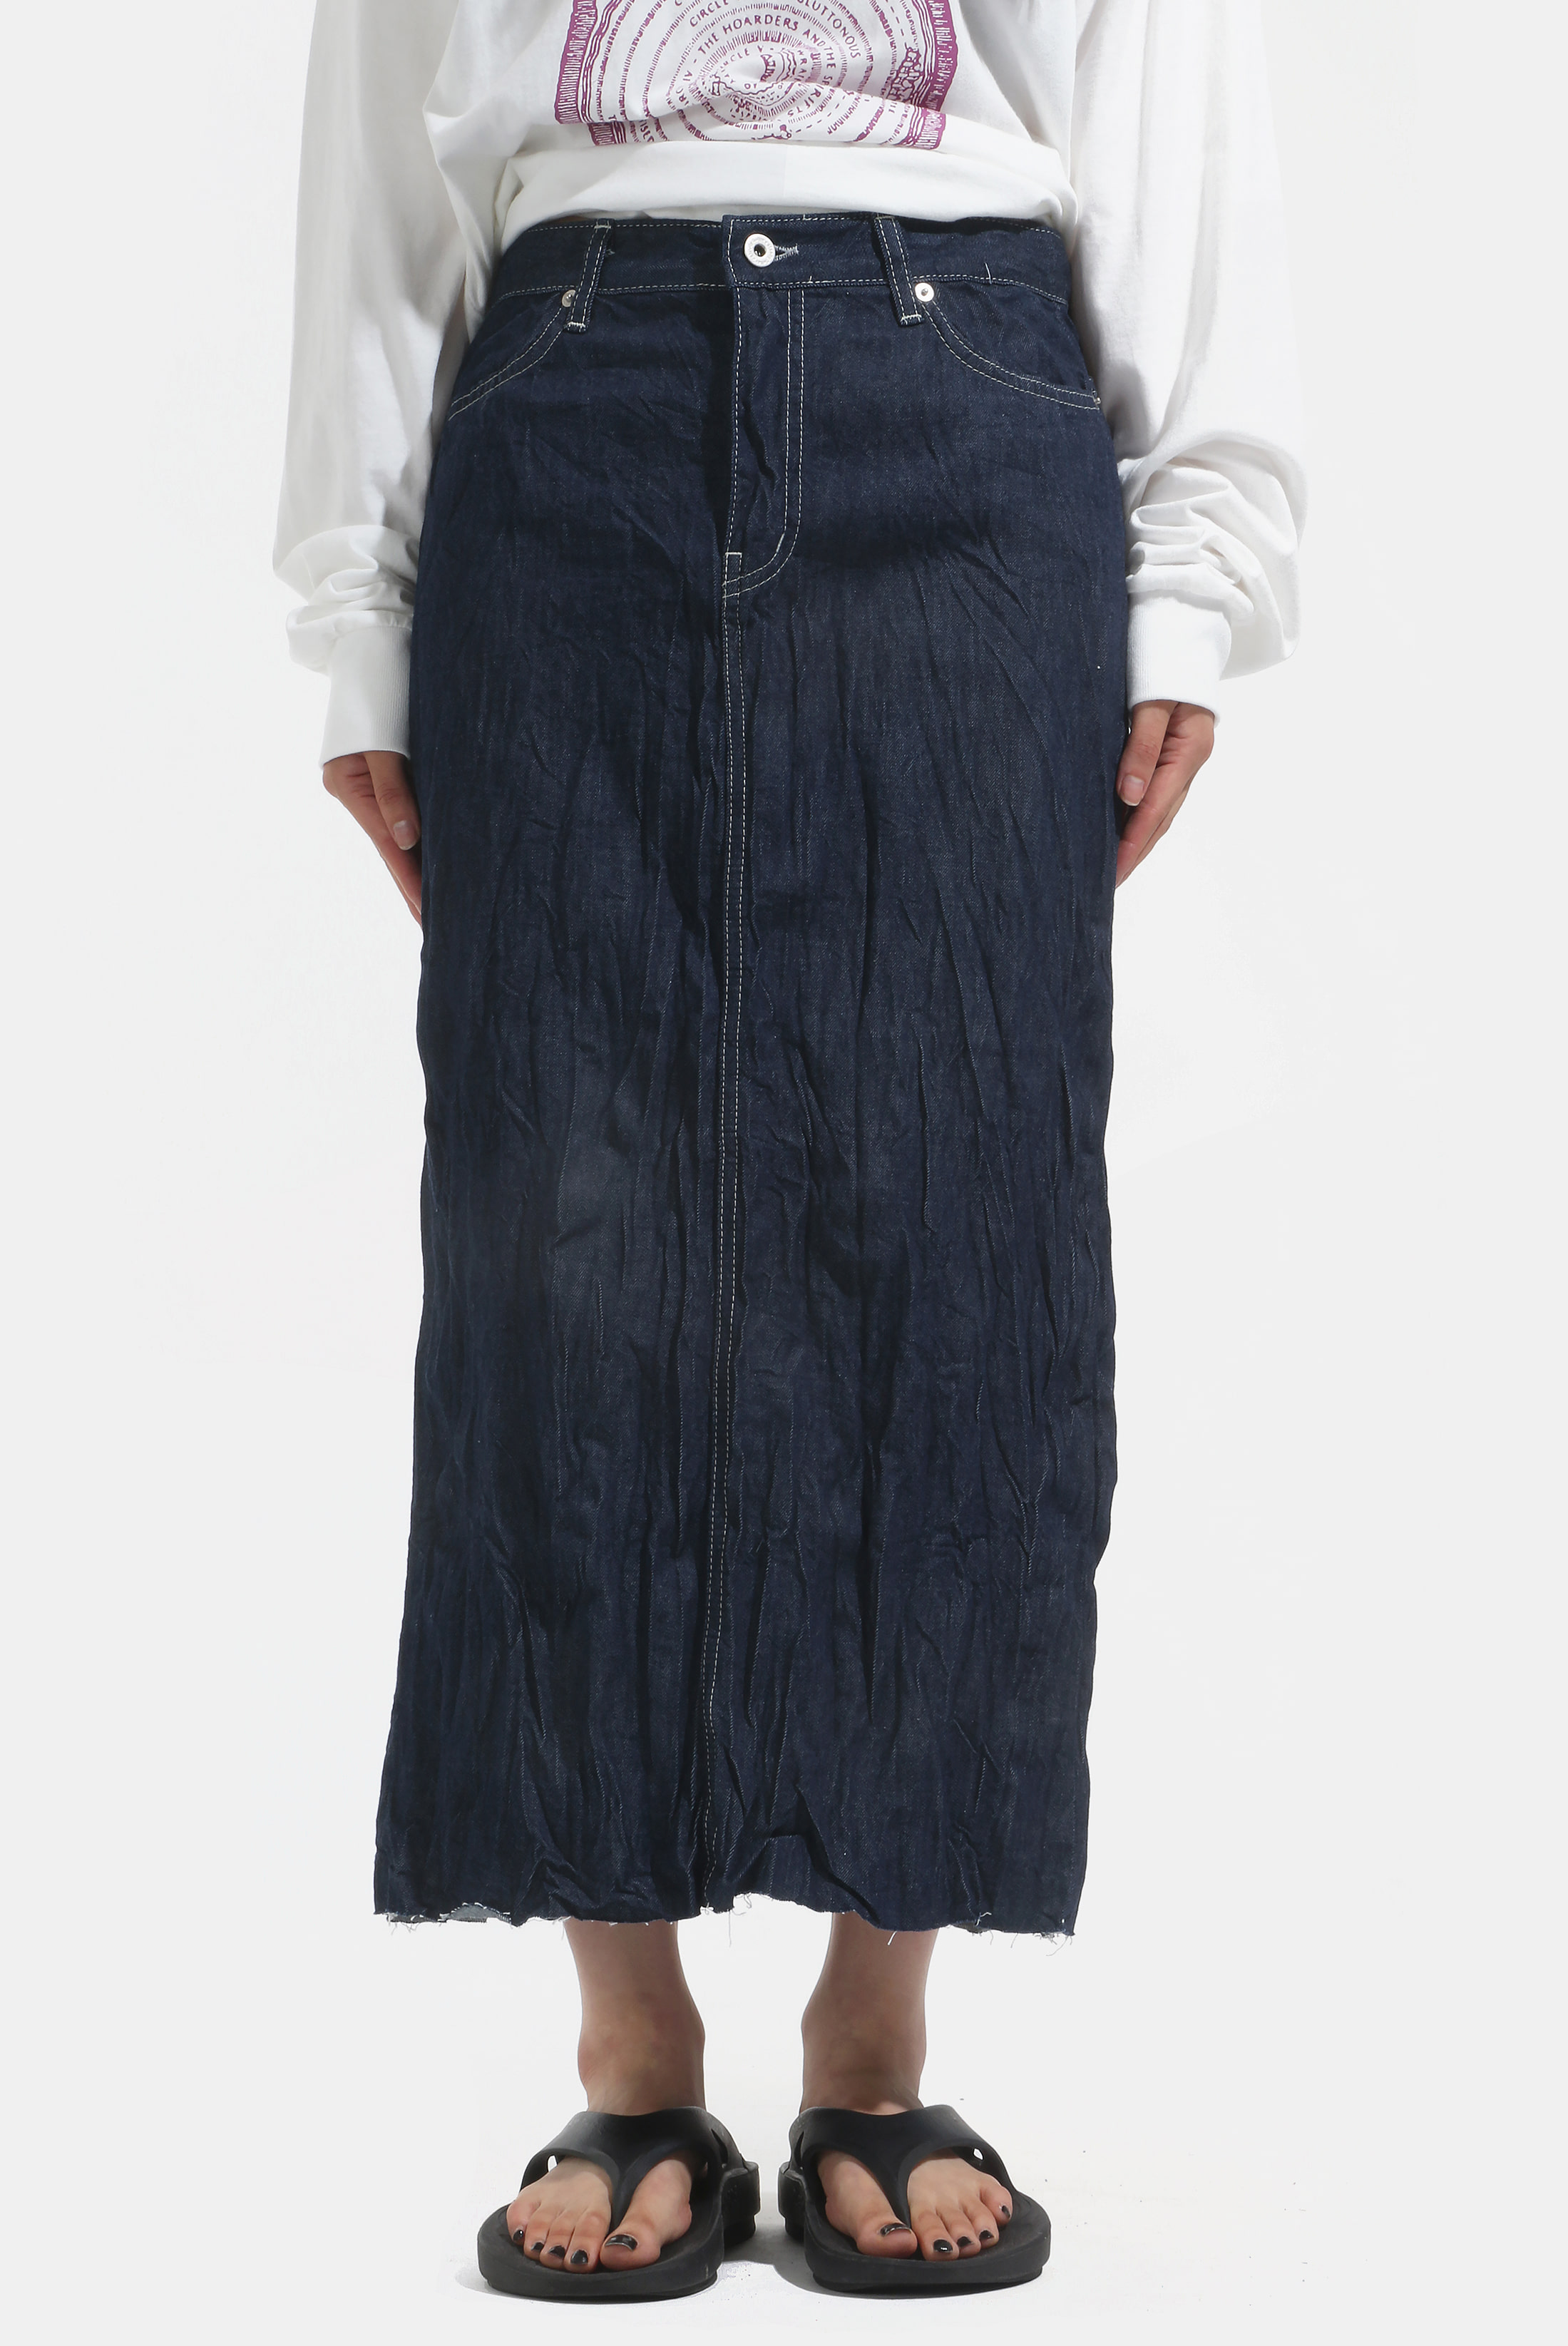 (W) Wrinkle_Denim Skirt